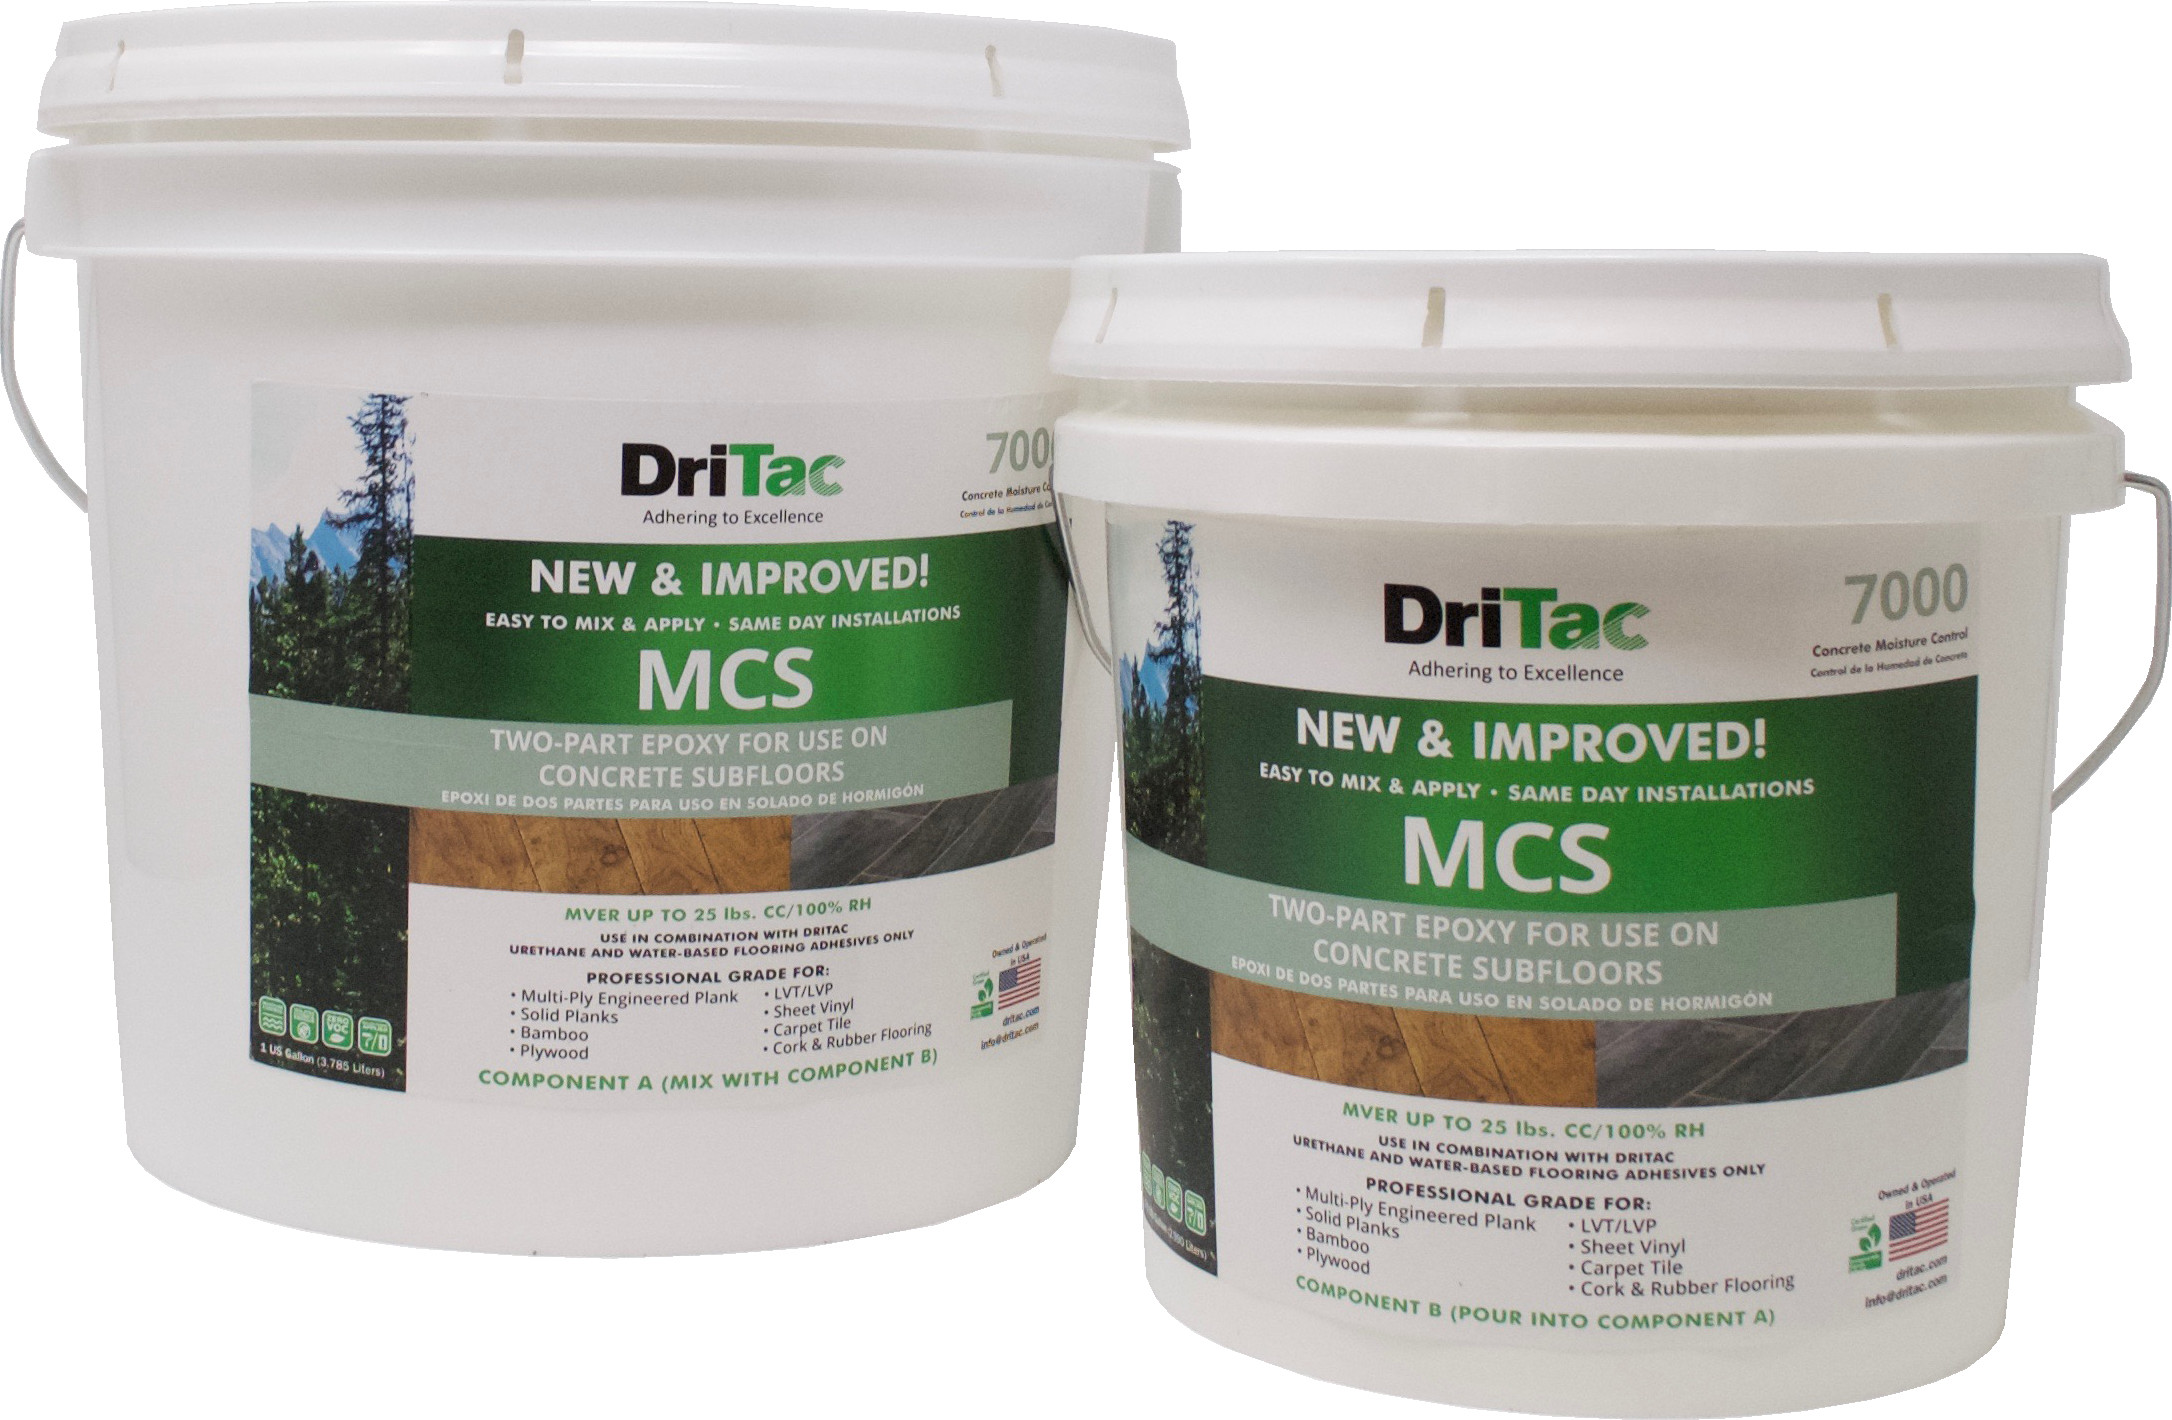 Hardwood Floor Repair Filler Of Installation Instructions for Dritacs Premium Flooring Adhesive for Download Dritac Engineered Wood Floor Repair Kit Technical Data Sheet